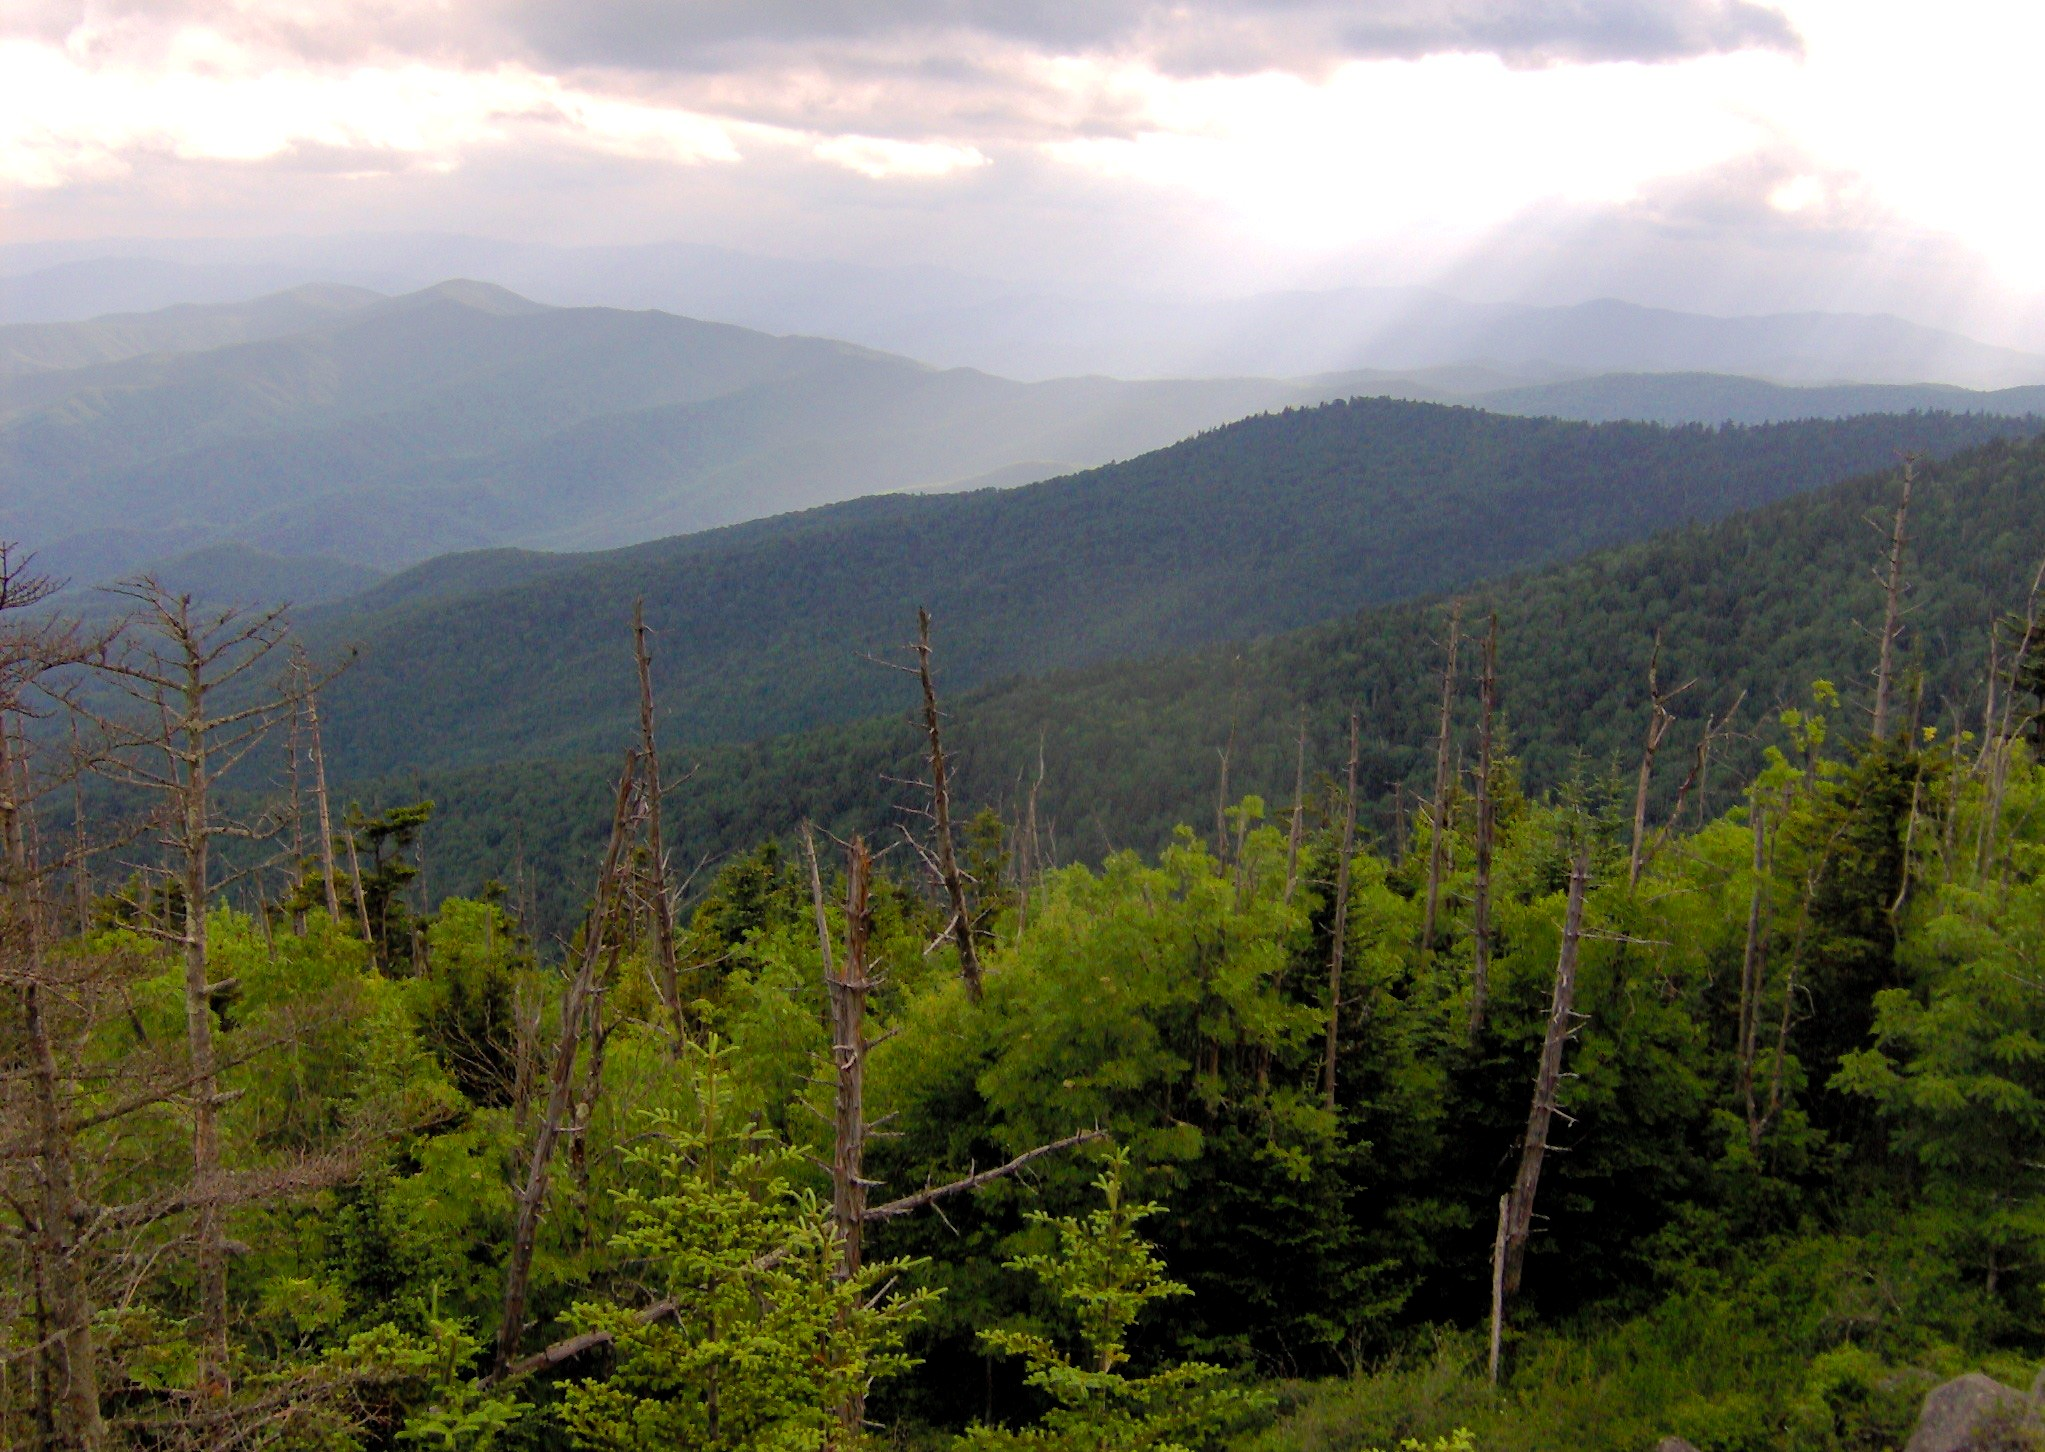 smoky mountains tennessee with File Clingmans Dome Southwest Tn1 on File Clingmans Dome View South Nc1 additionally Little Greenbrier  Great Smoky Mountains also Ober Gatlinburg besides Lure also Watch.